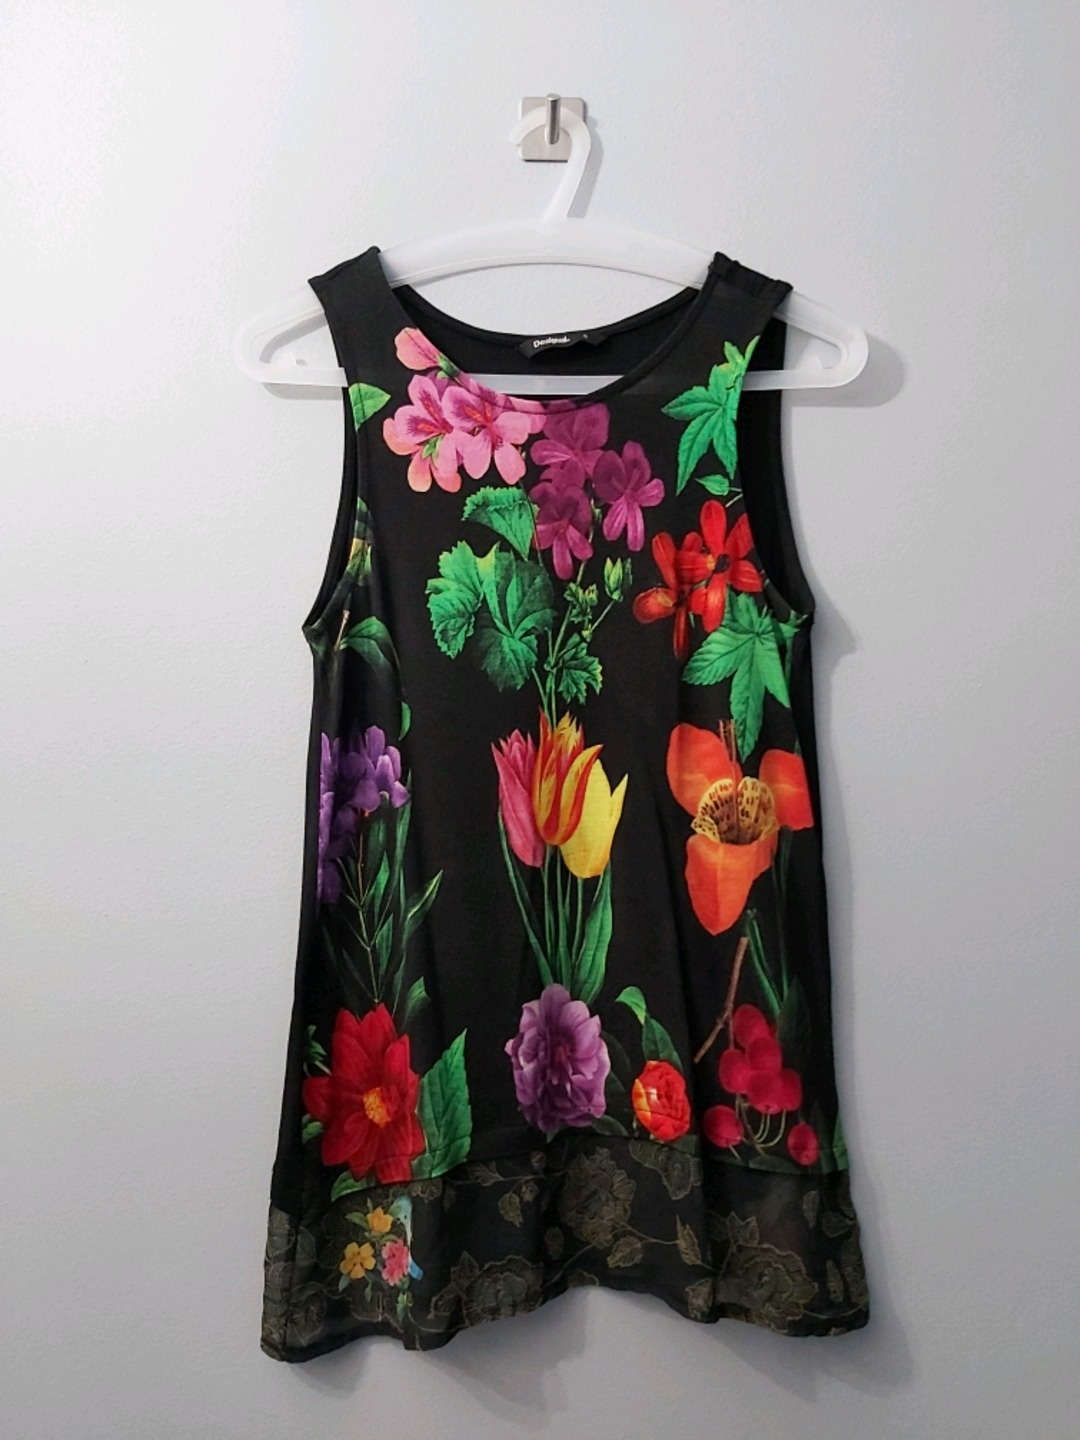 Women's tops & t-shirts - DESIGUAL photo 1